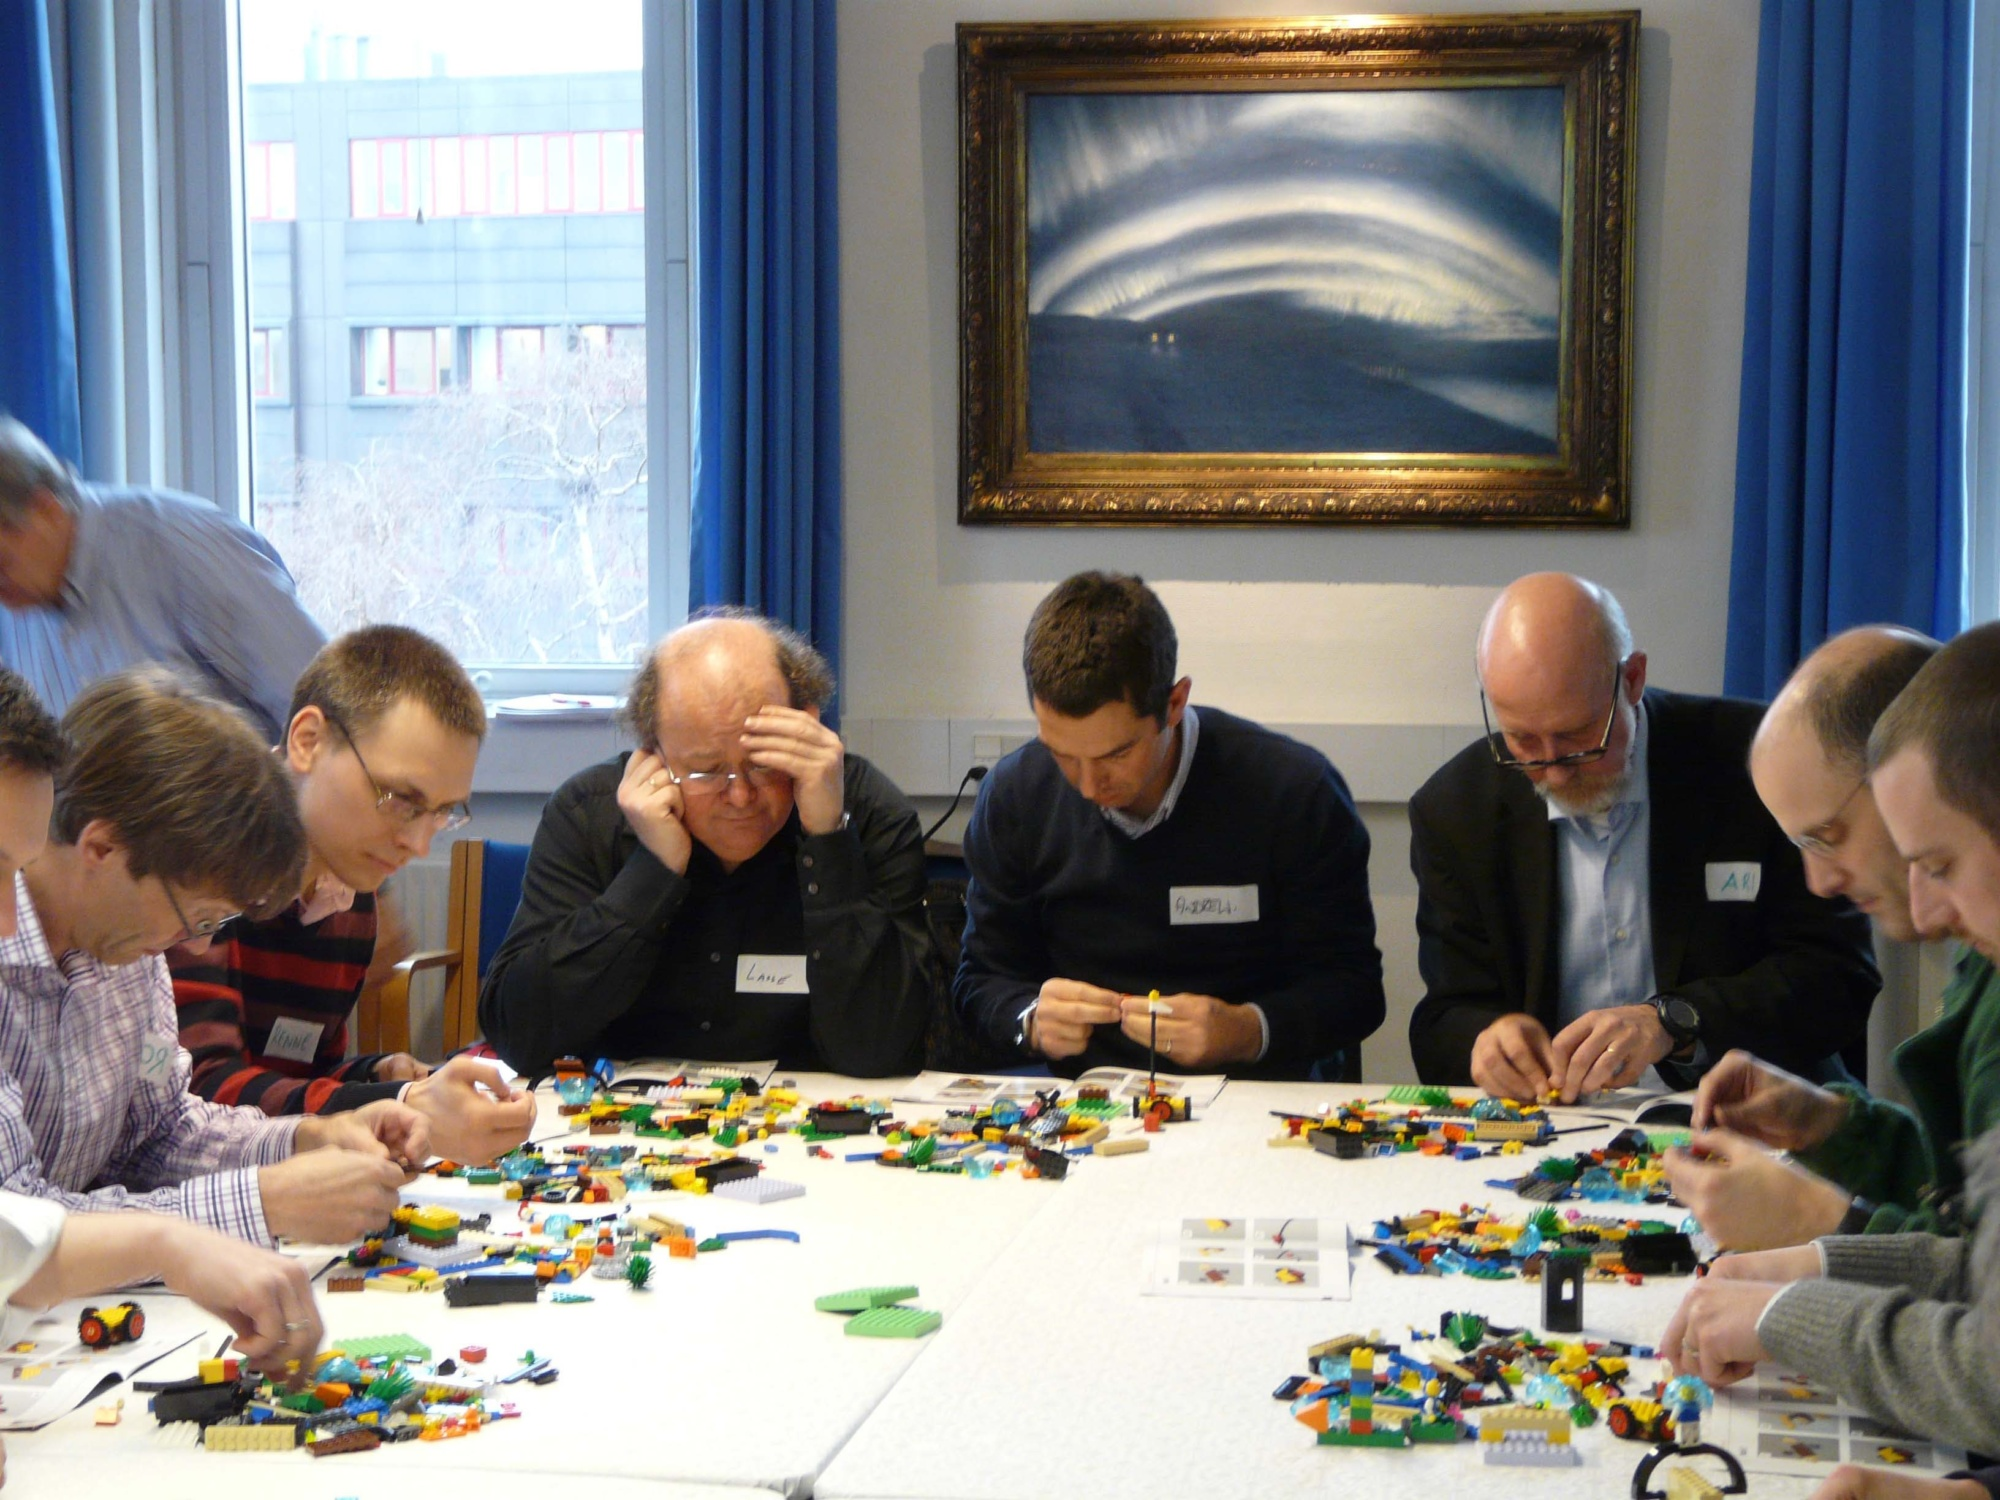 LEGO® SERIOUS PLAY® modeling building begins